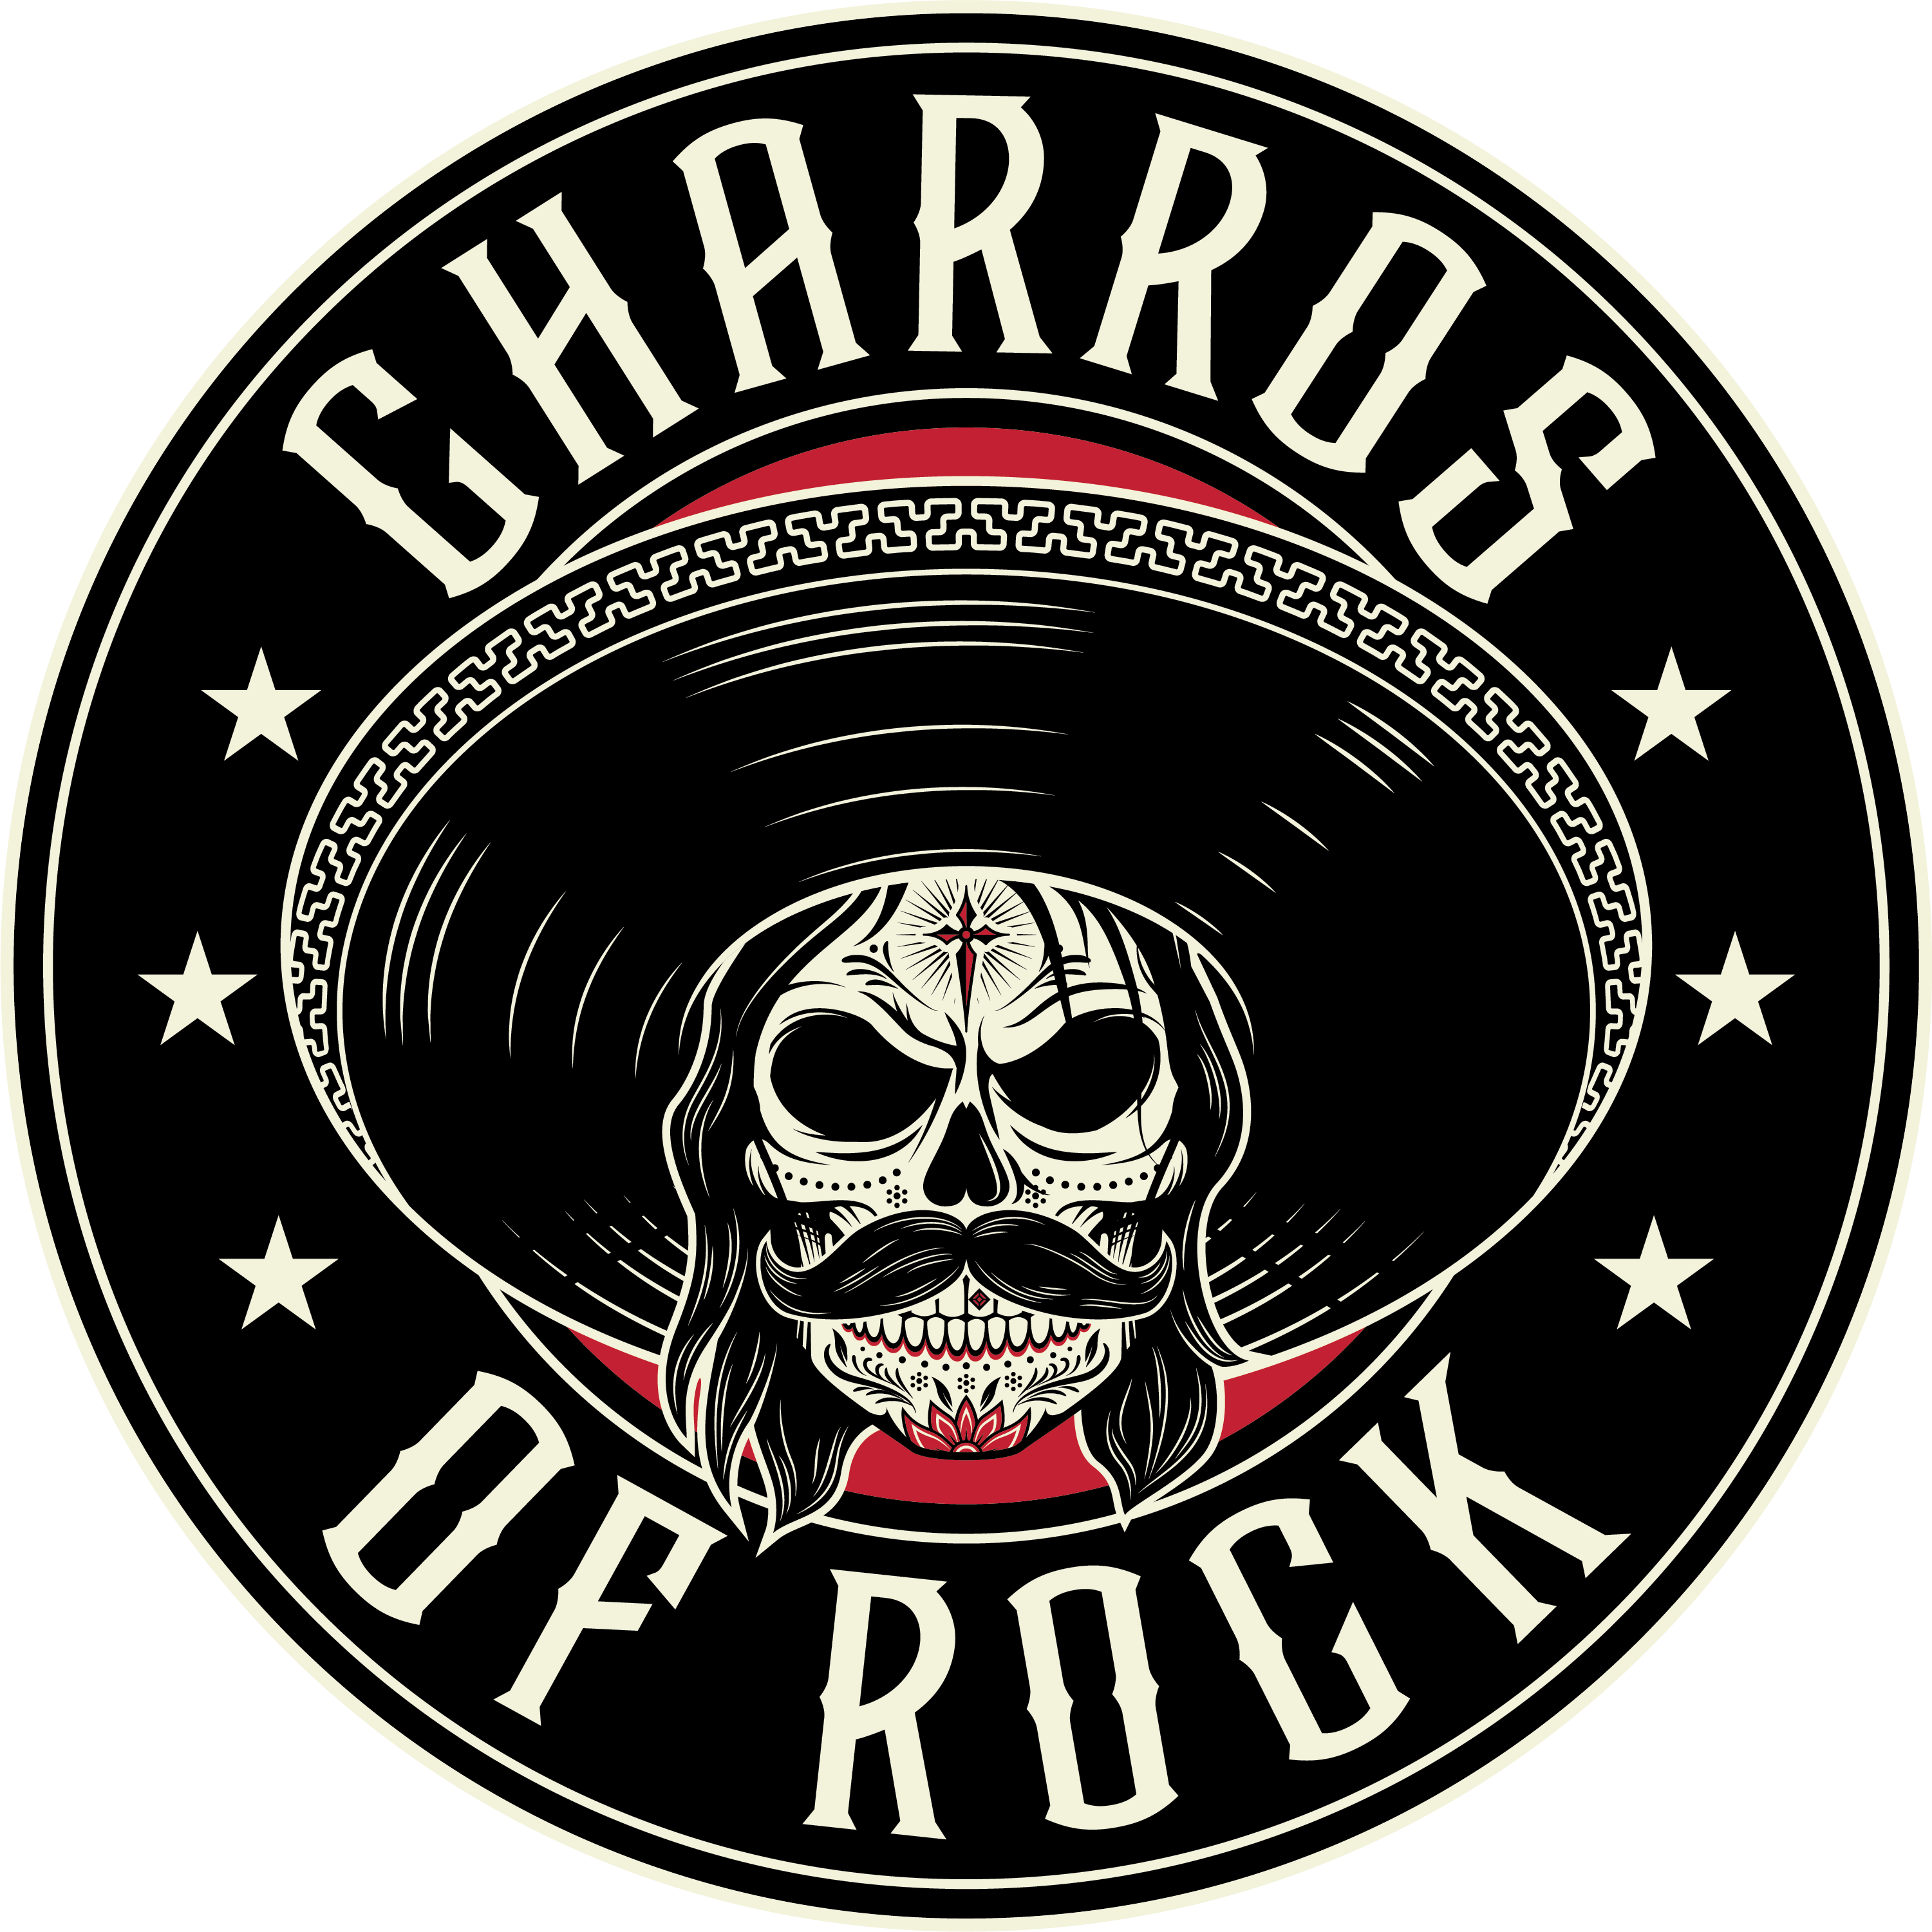 Charros of Rock